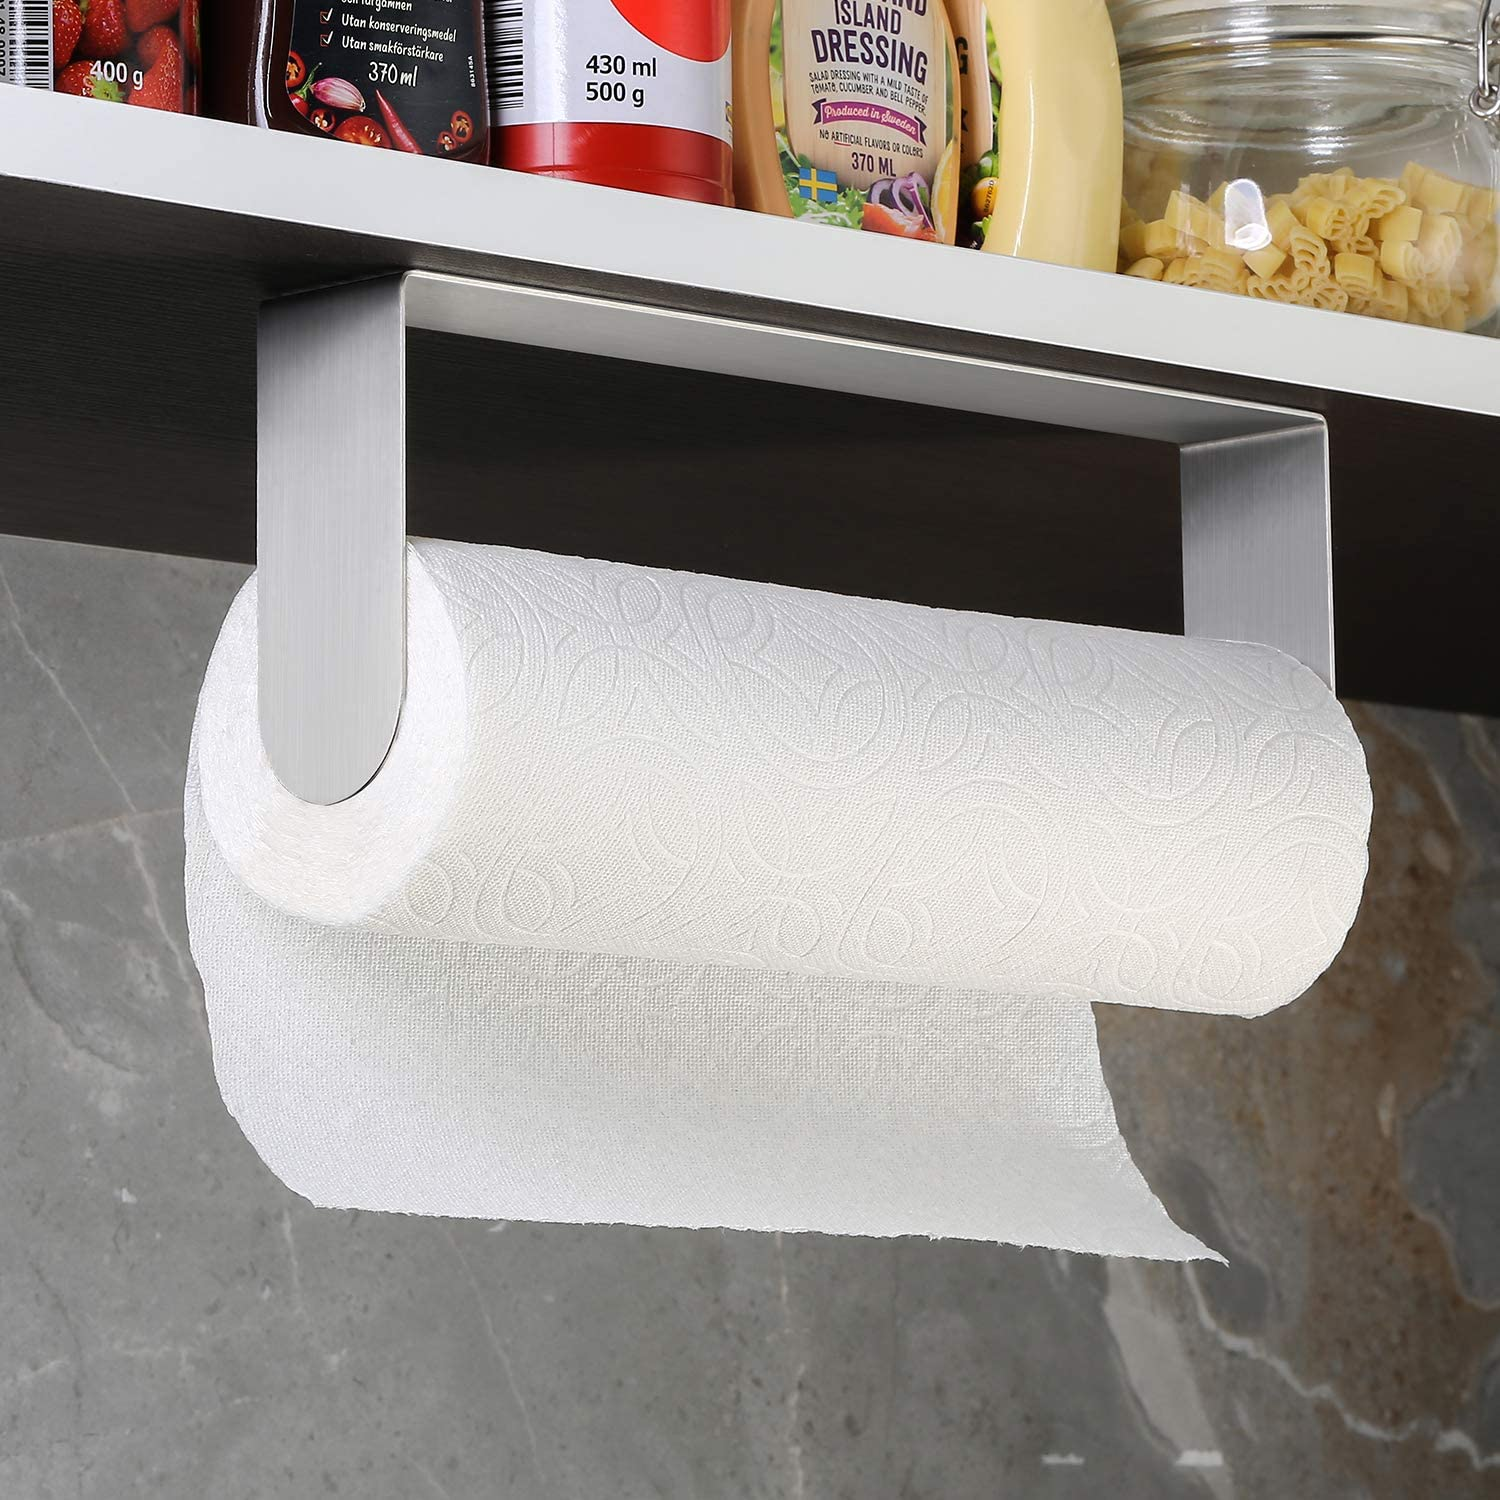 Stainless Steel Self Adhesive Paper Towel Rack for Large Paper Roll Stick on Kitchen Vertical or Horizontal DAOYA Paper Towel Holder Under Cabinet